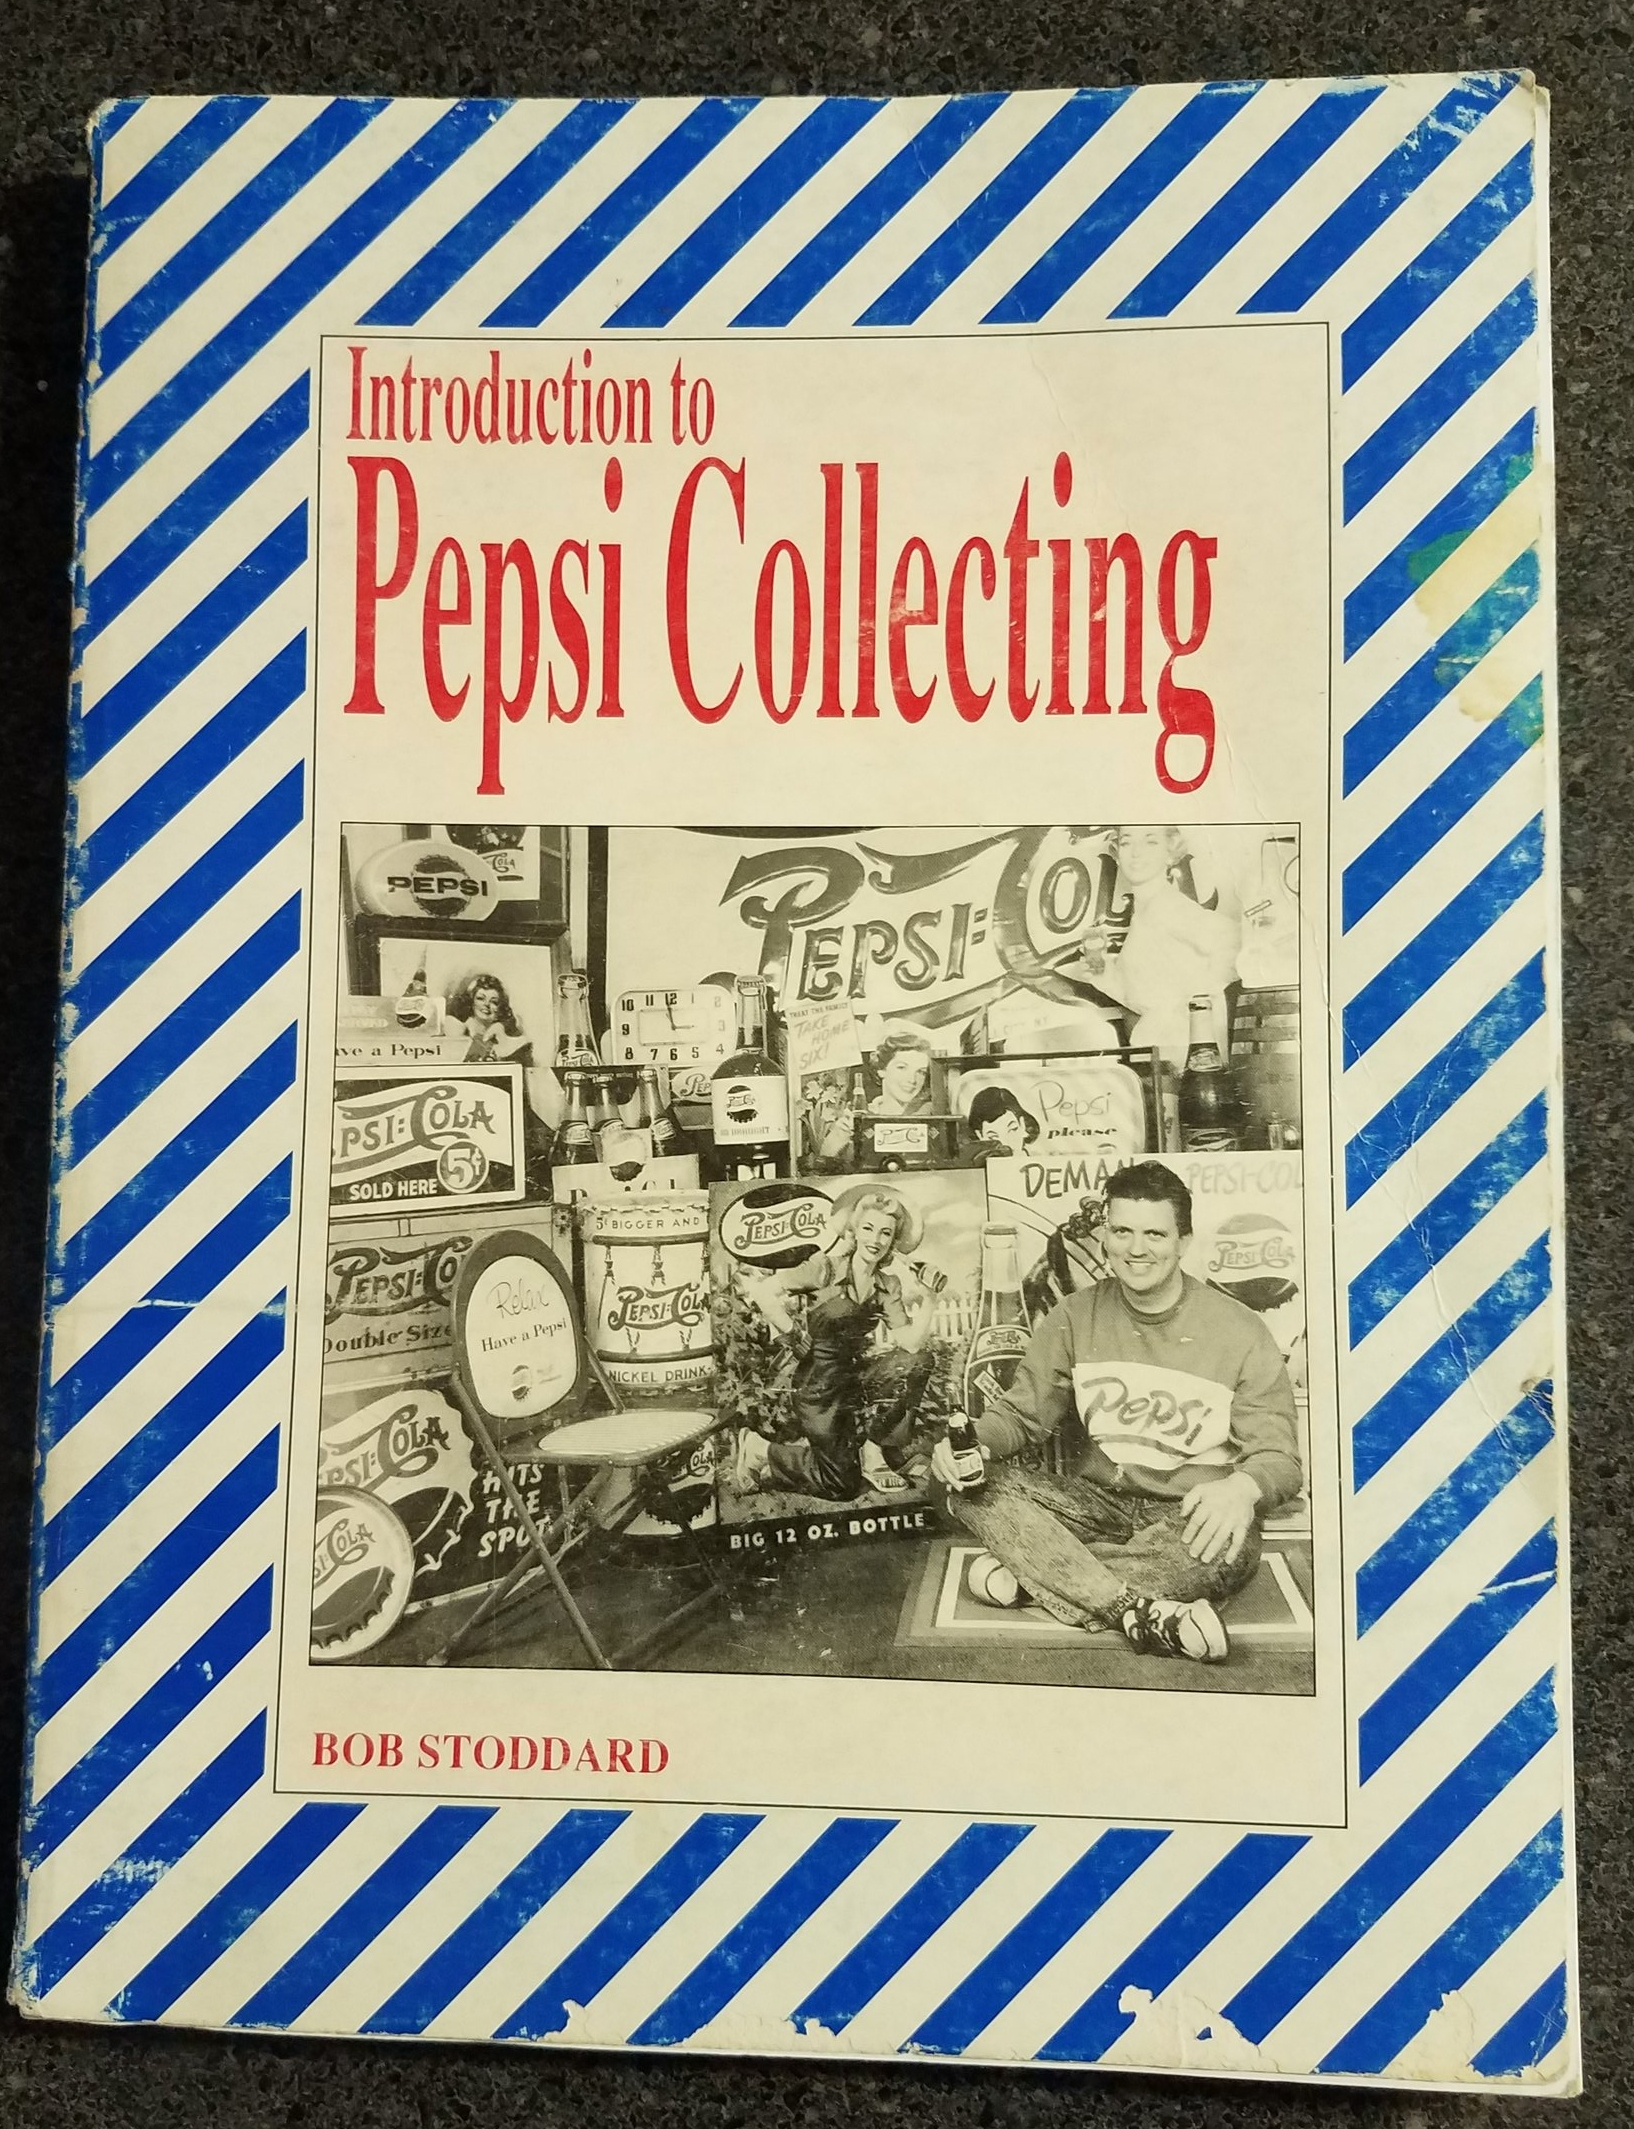 Introduction to Pepsi Collecting - Bob Stoddard 1991From the Founder father of the Pepsi Cola Collectors club, Bob has put together a great huge listing of Pepsi collectables.